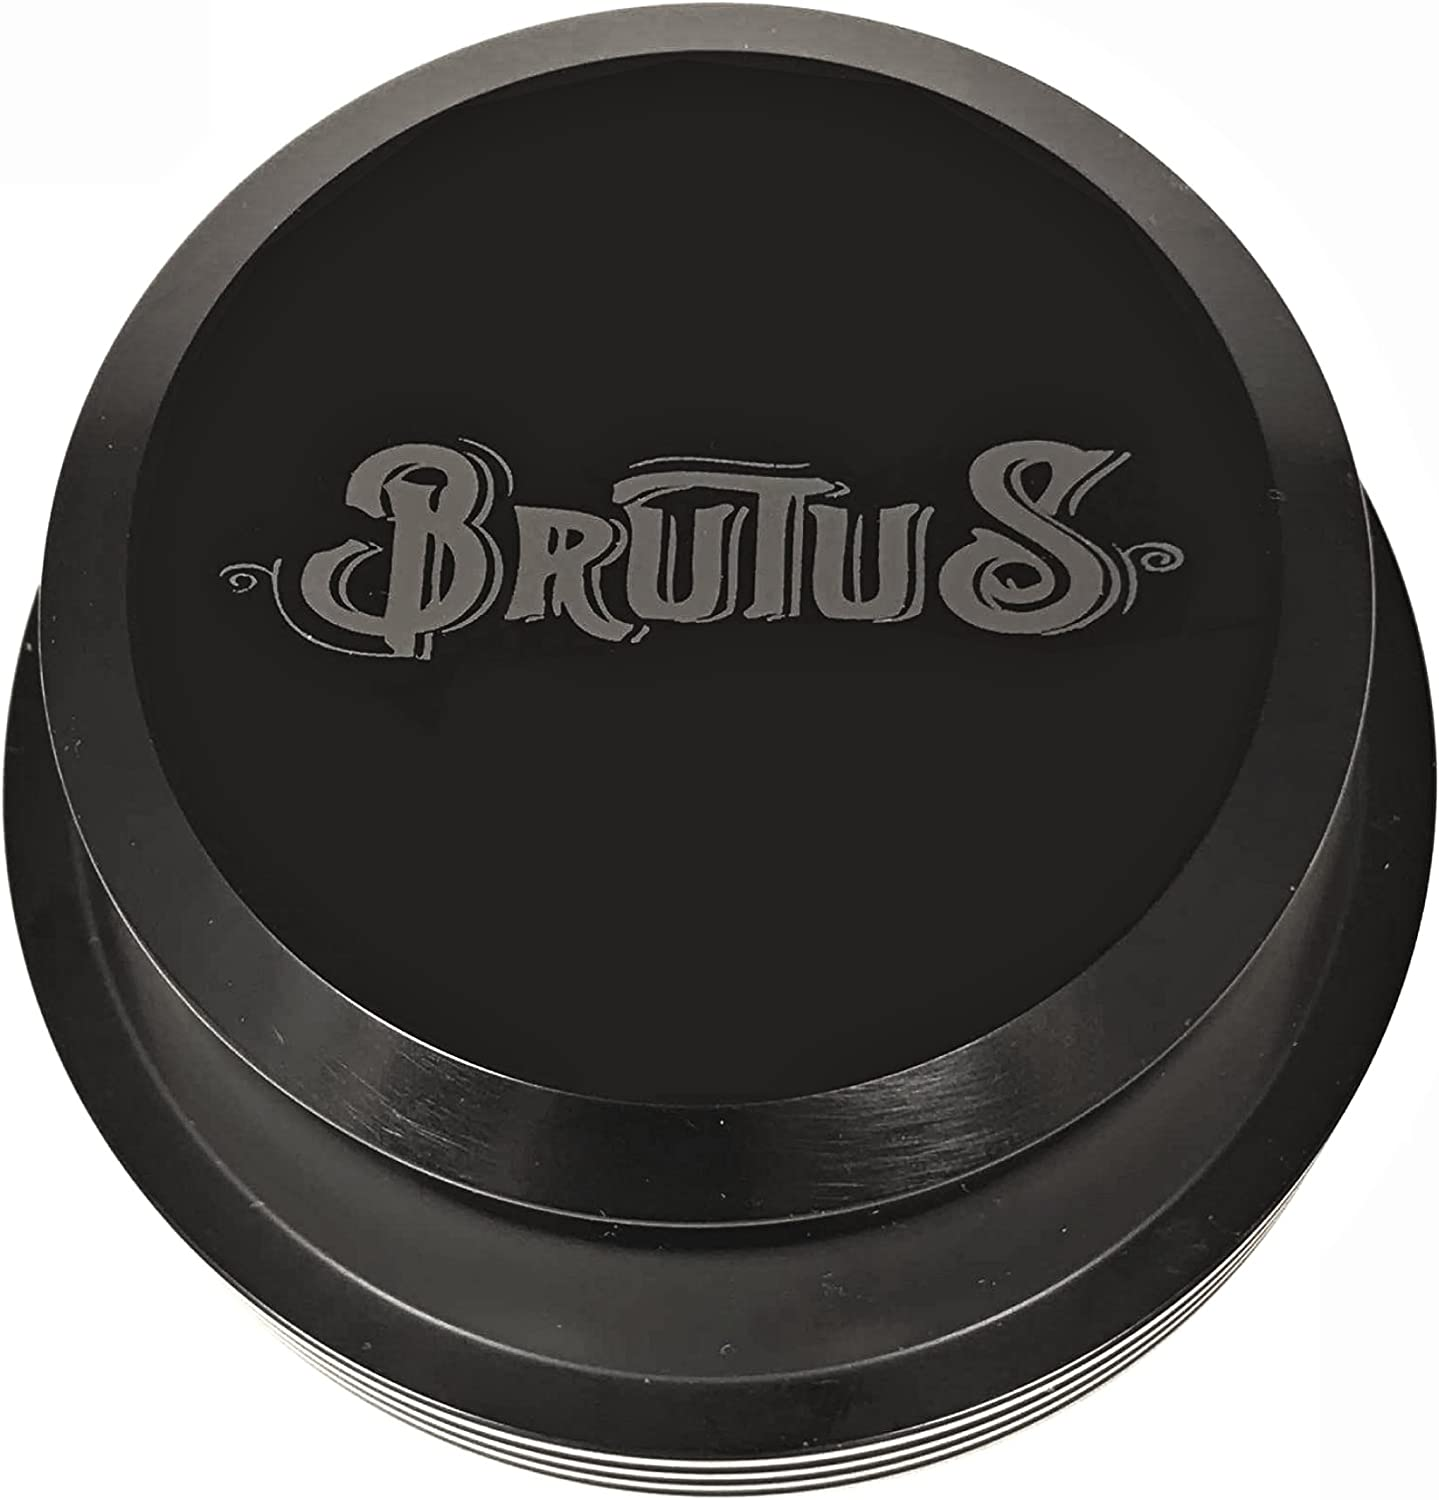 Brutus Record Stabilization Weight by Collector Protector Reduces Vibration and Creates Better Contact Between Vinyl and Platter.